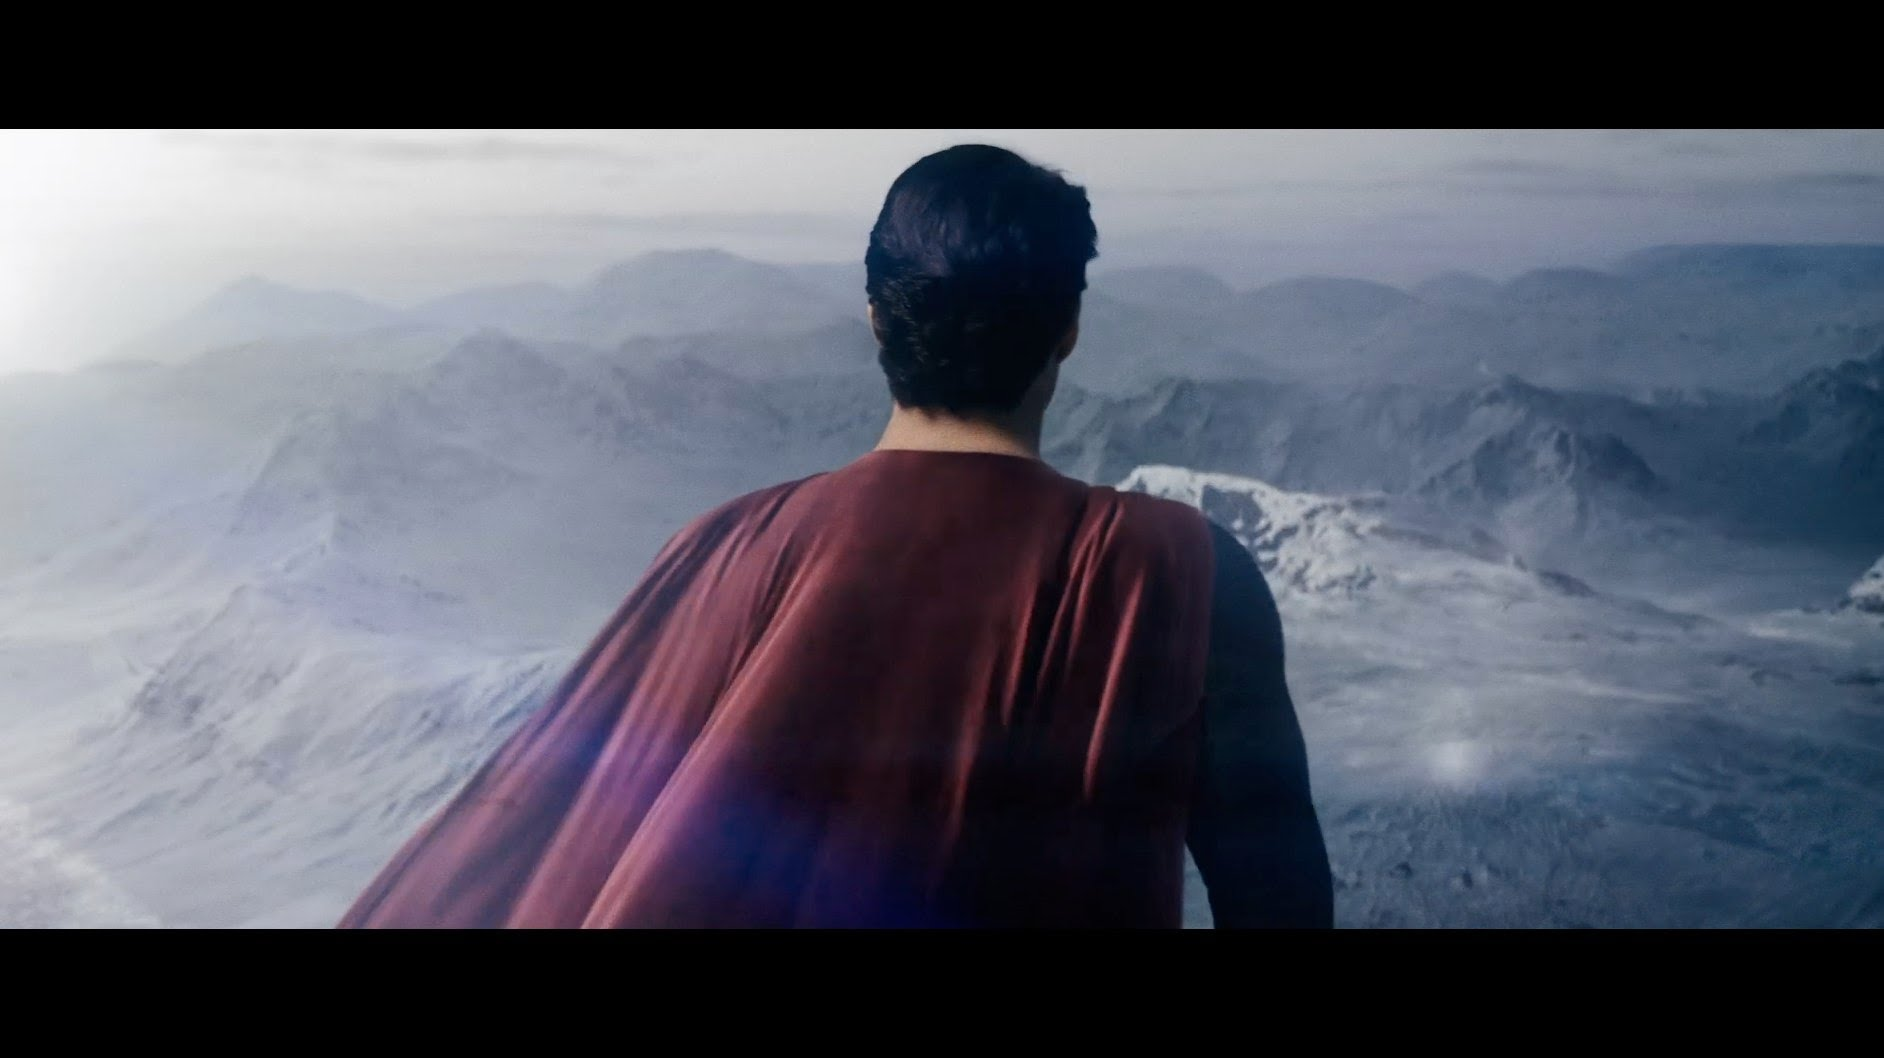 Jesus Christ Man of Steel